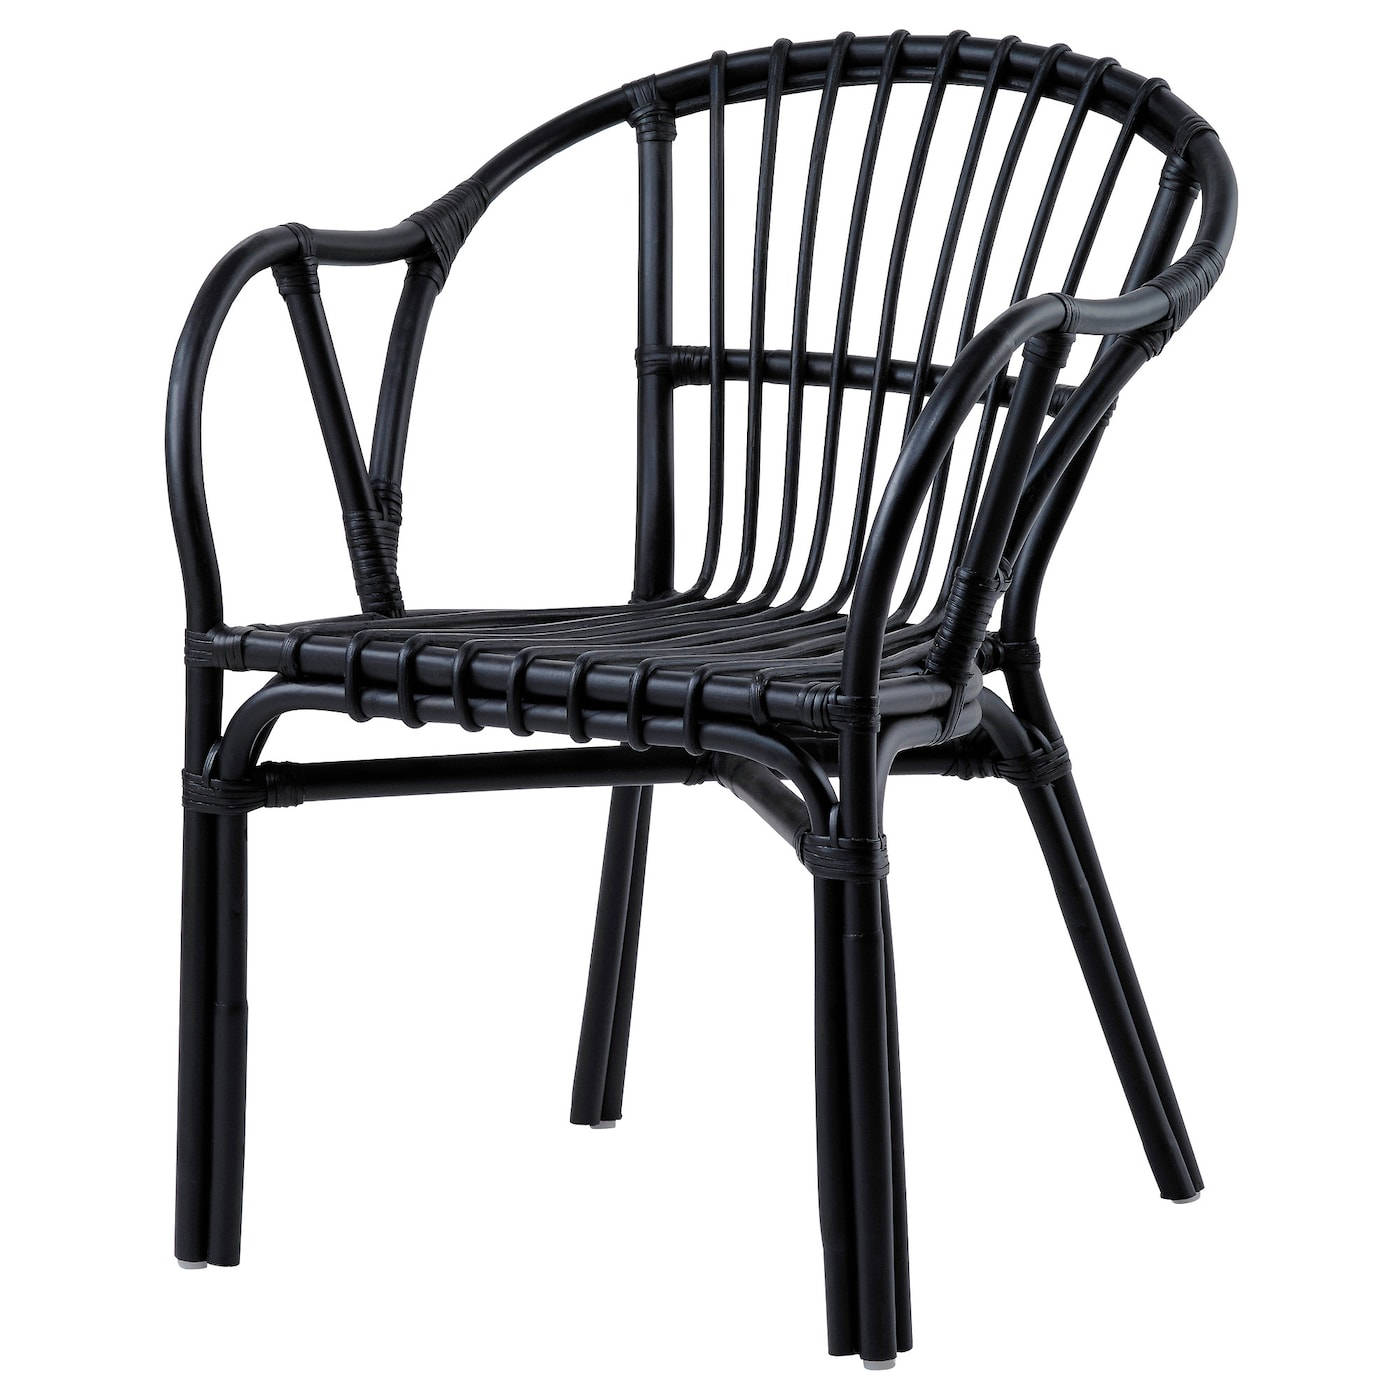 Basket chair ikea - Ikea Holmsel Armchair Plastic Feet Protect Your Floor Against Scratching